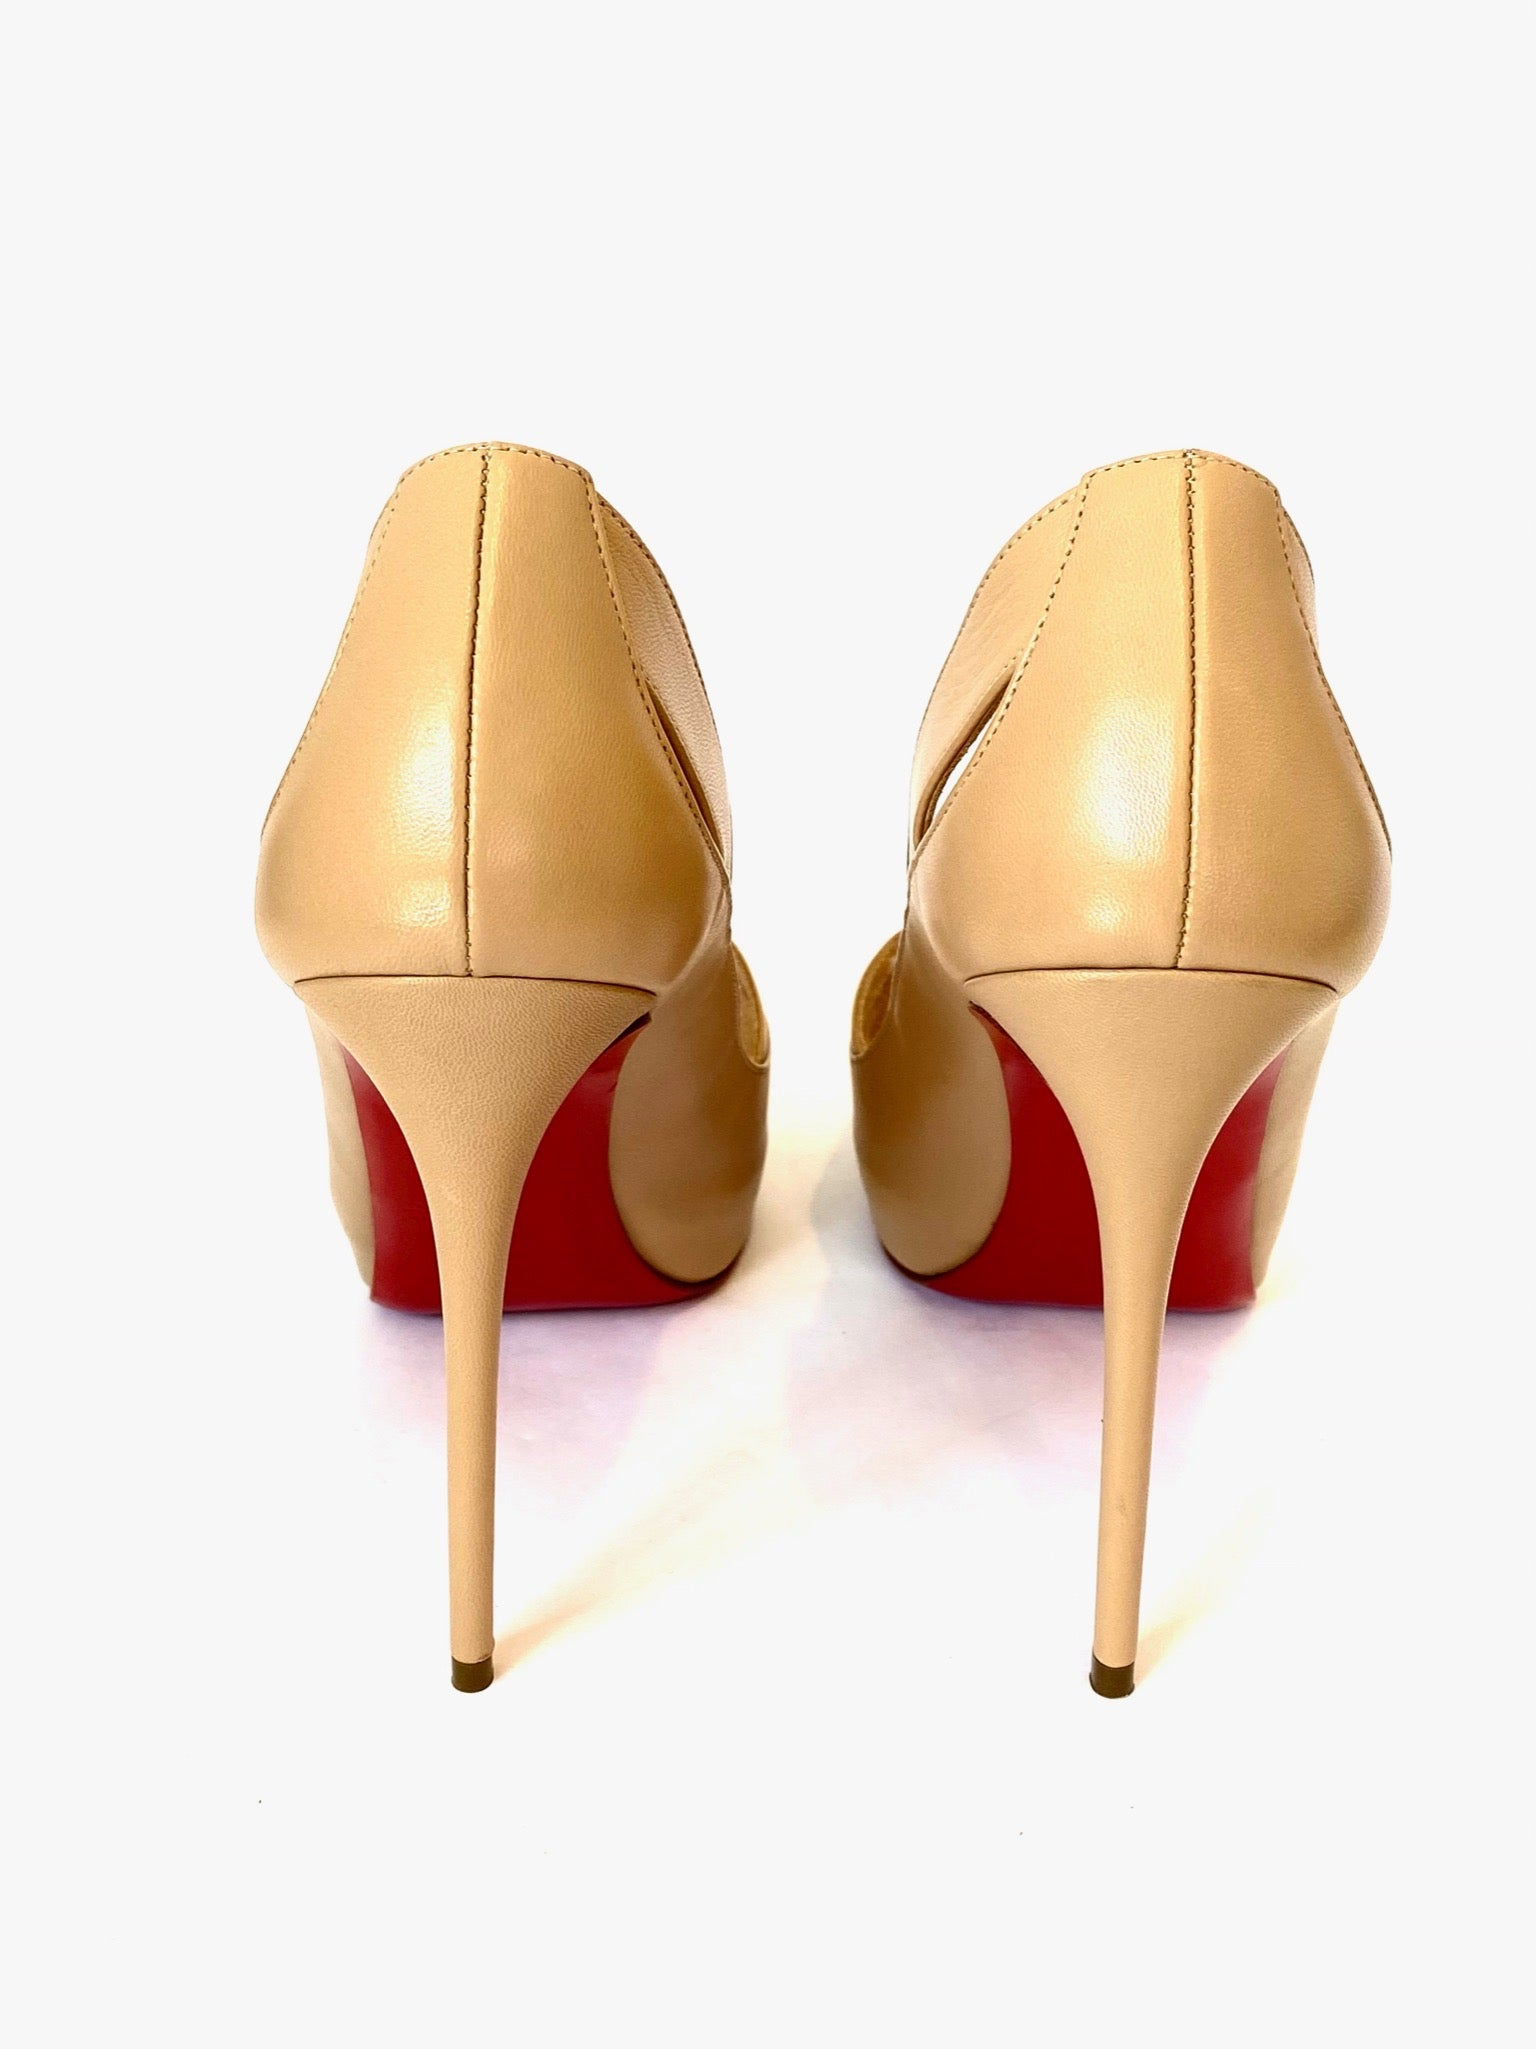 Christian Louboutin Nude Leather Academa 120 Pumps Size 36.5